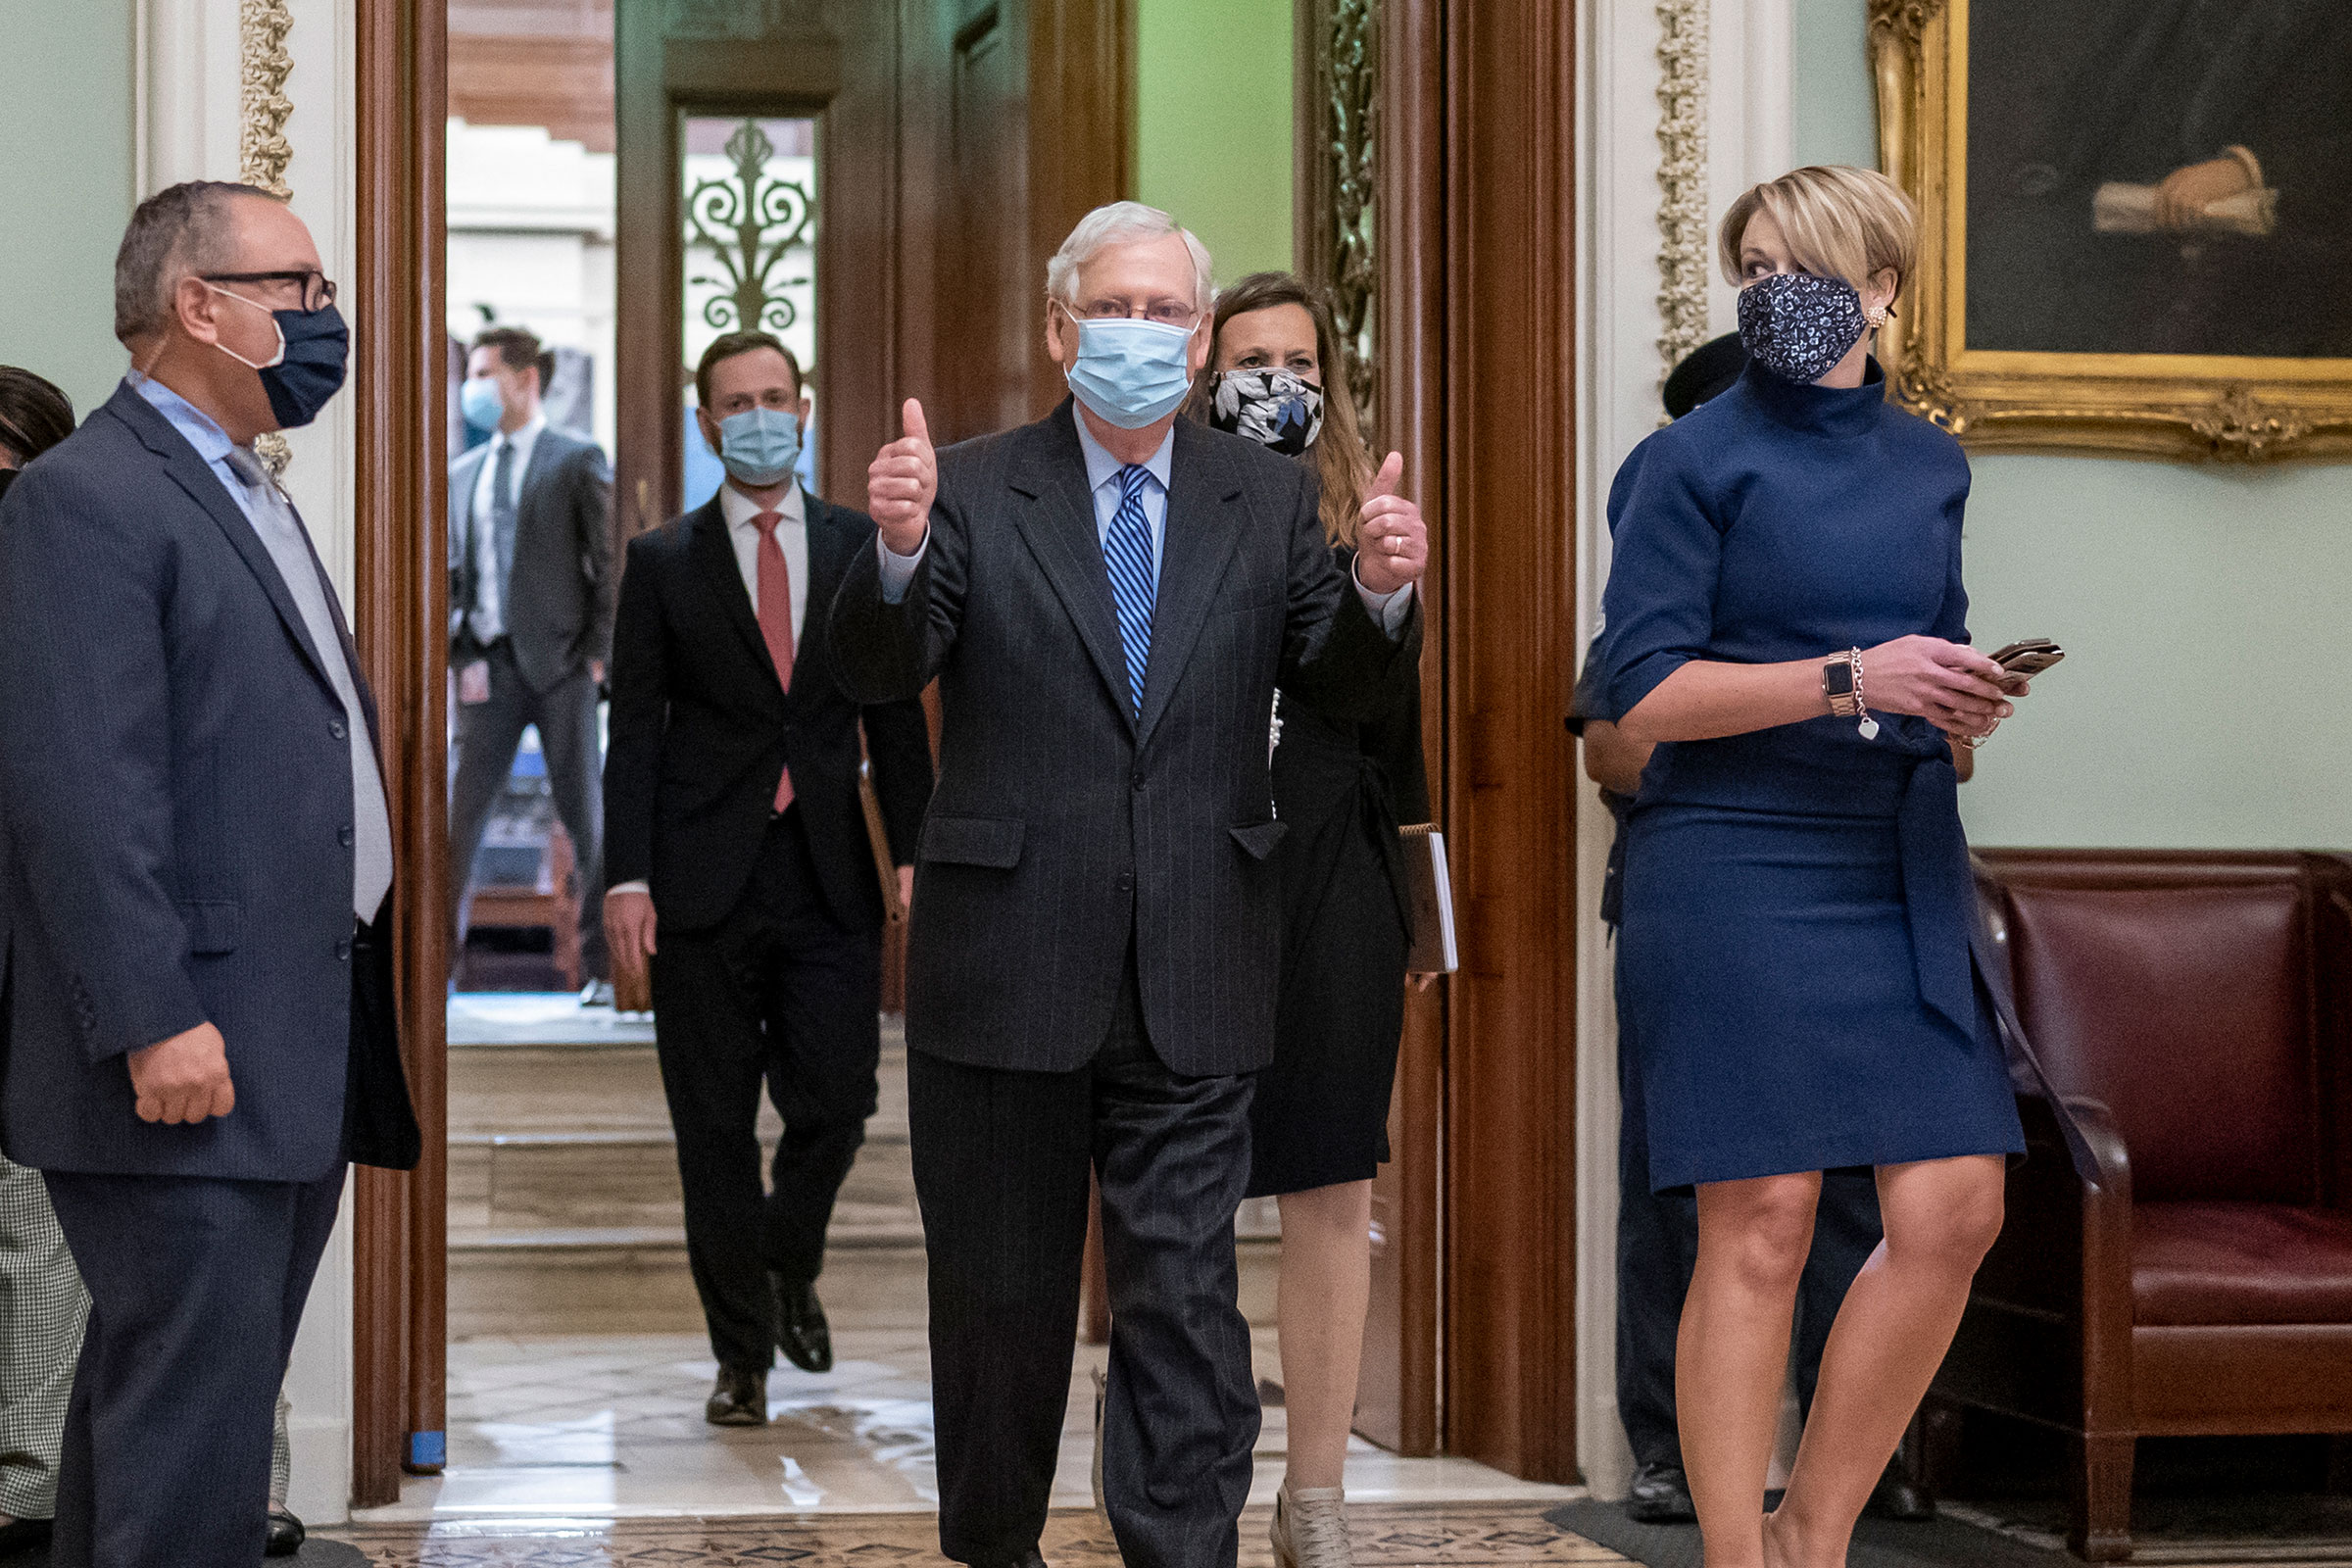 Mitch McConnell leaves the chamber after final roll call vote to put Amy Coney Barrett on the Supreme Court, at the Capitol in Washington, Monday, Oct. 26, 2020.